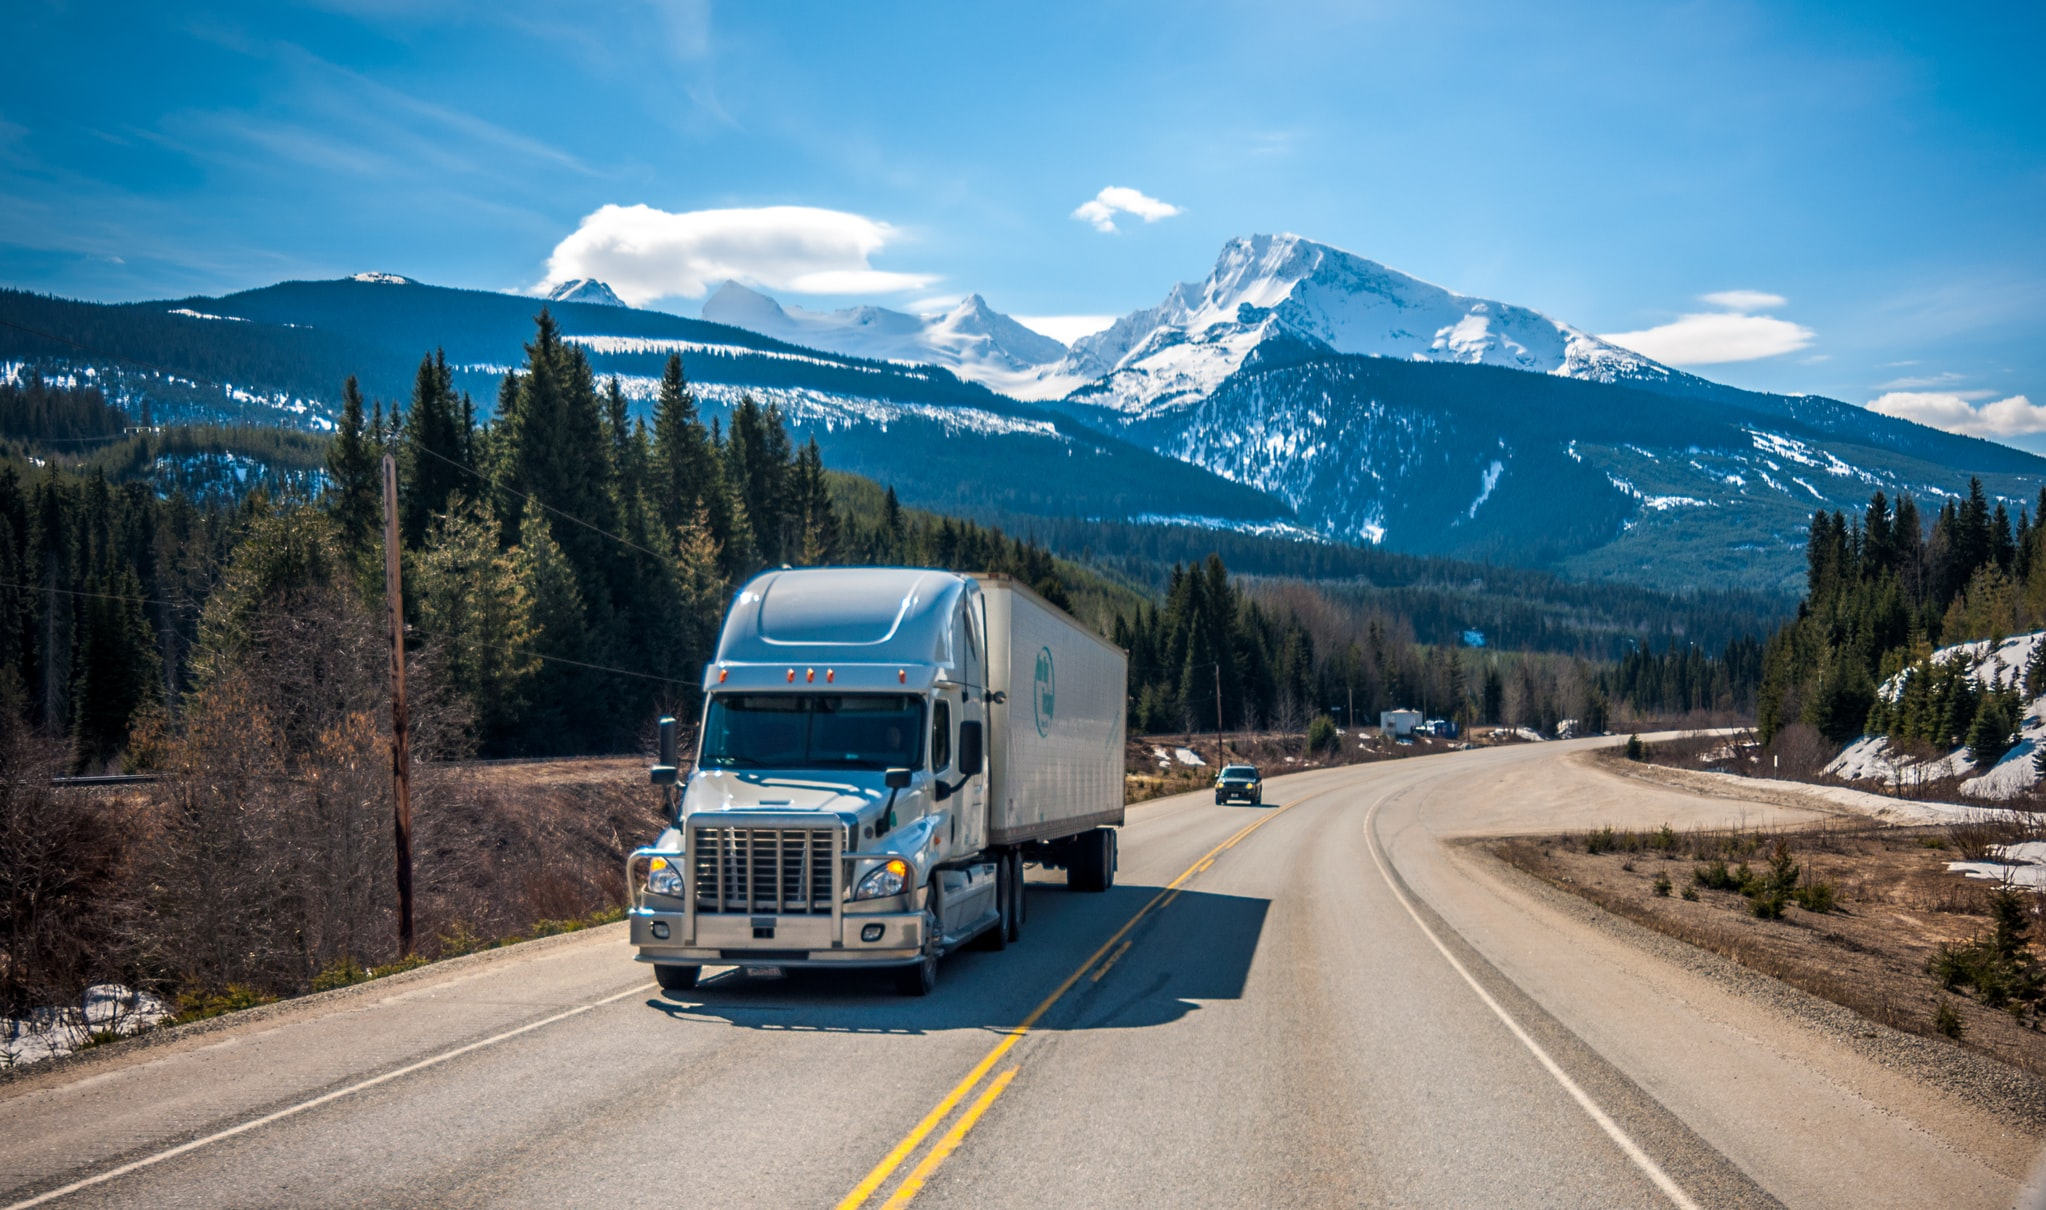 New Publication Transport Dive Focuses on Trucking Industry News and Trends